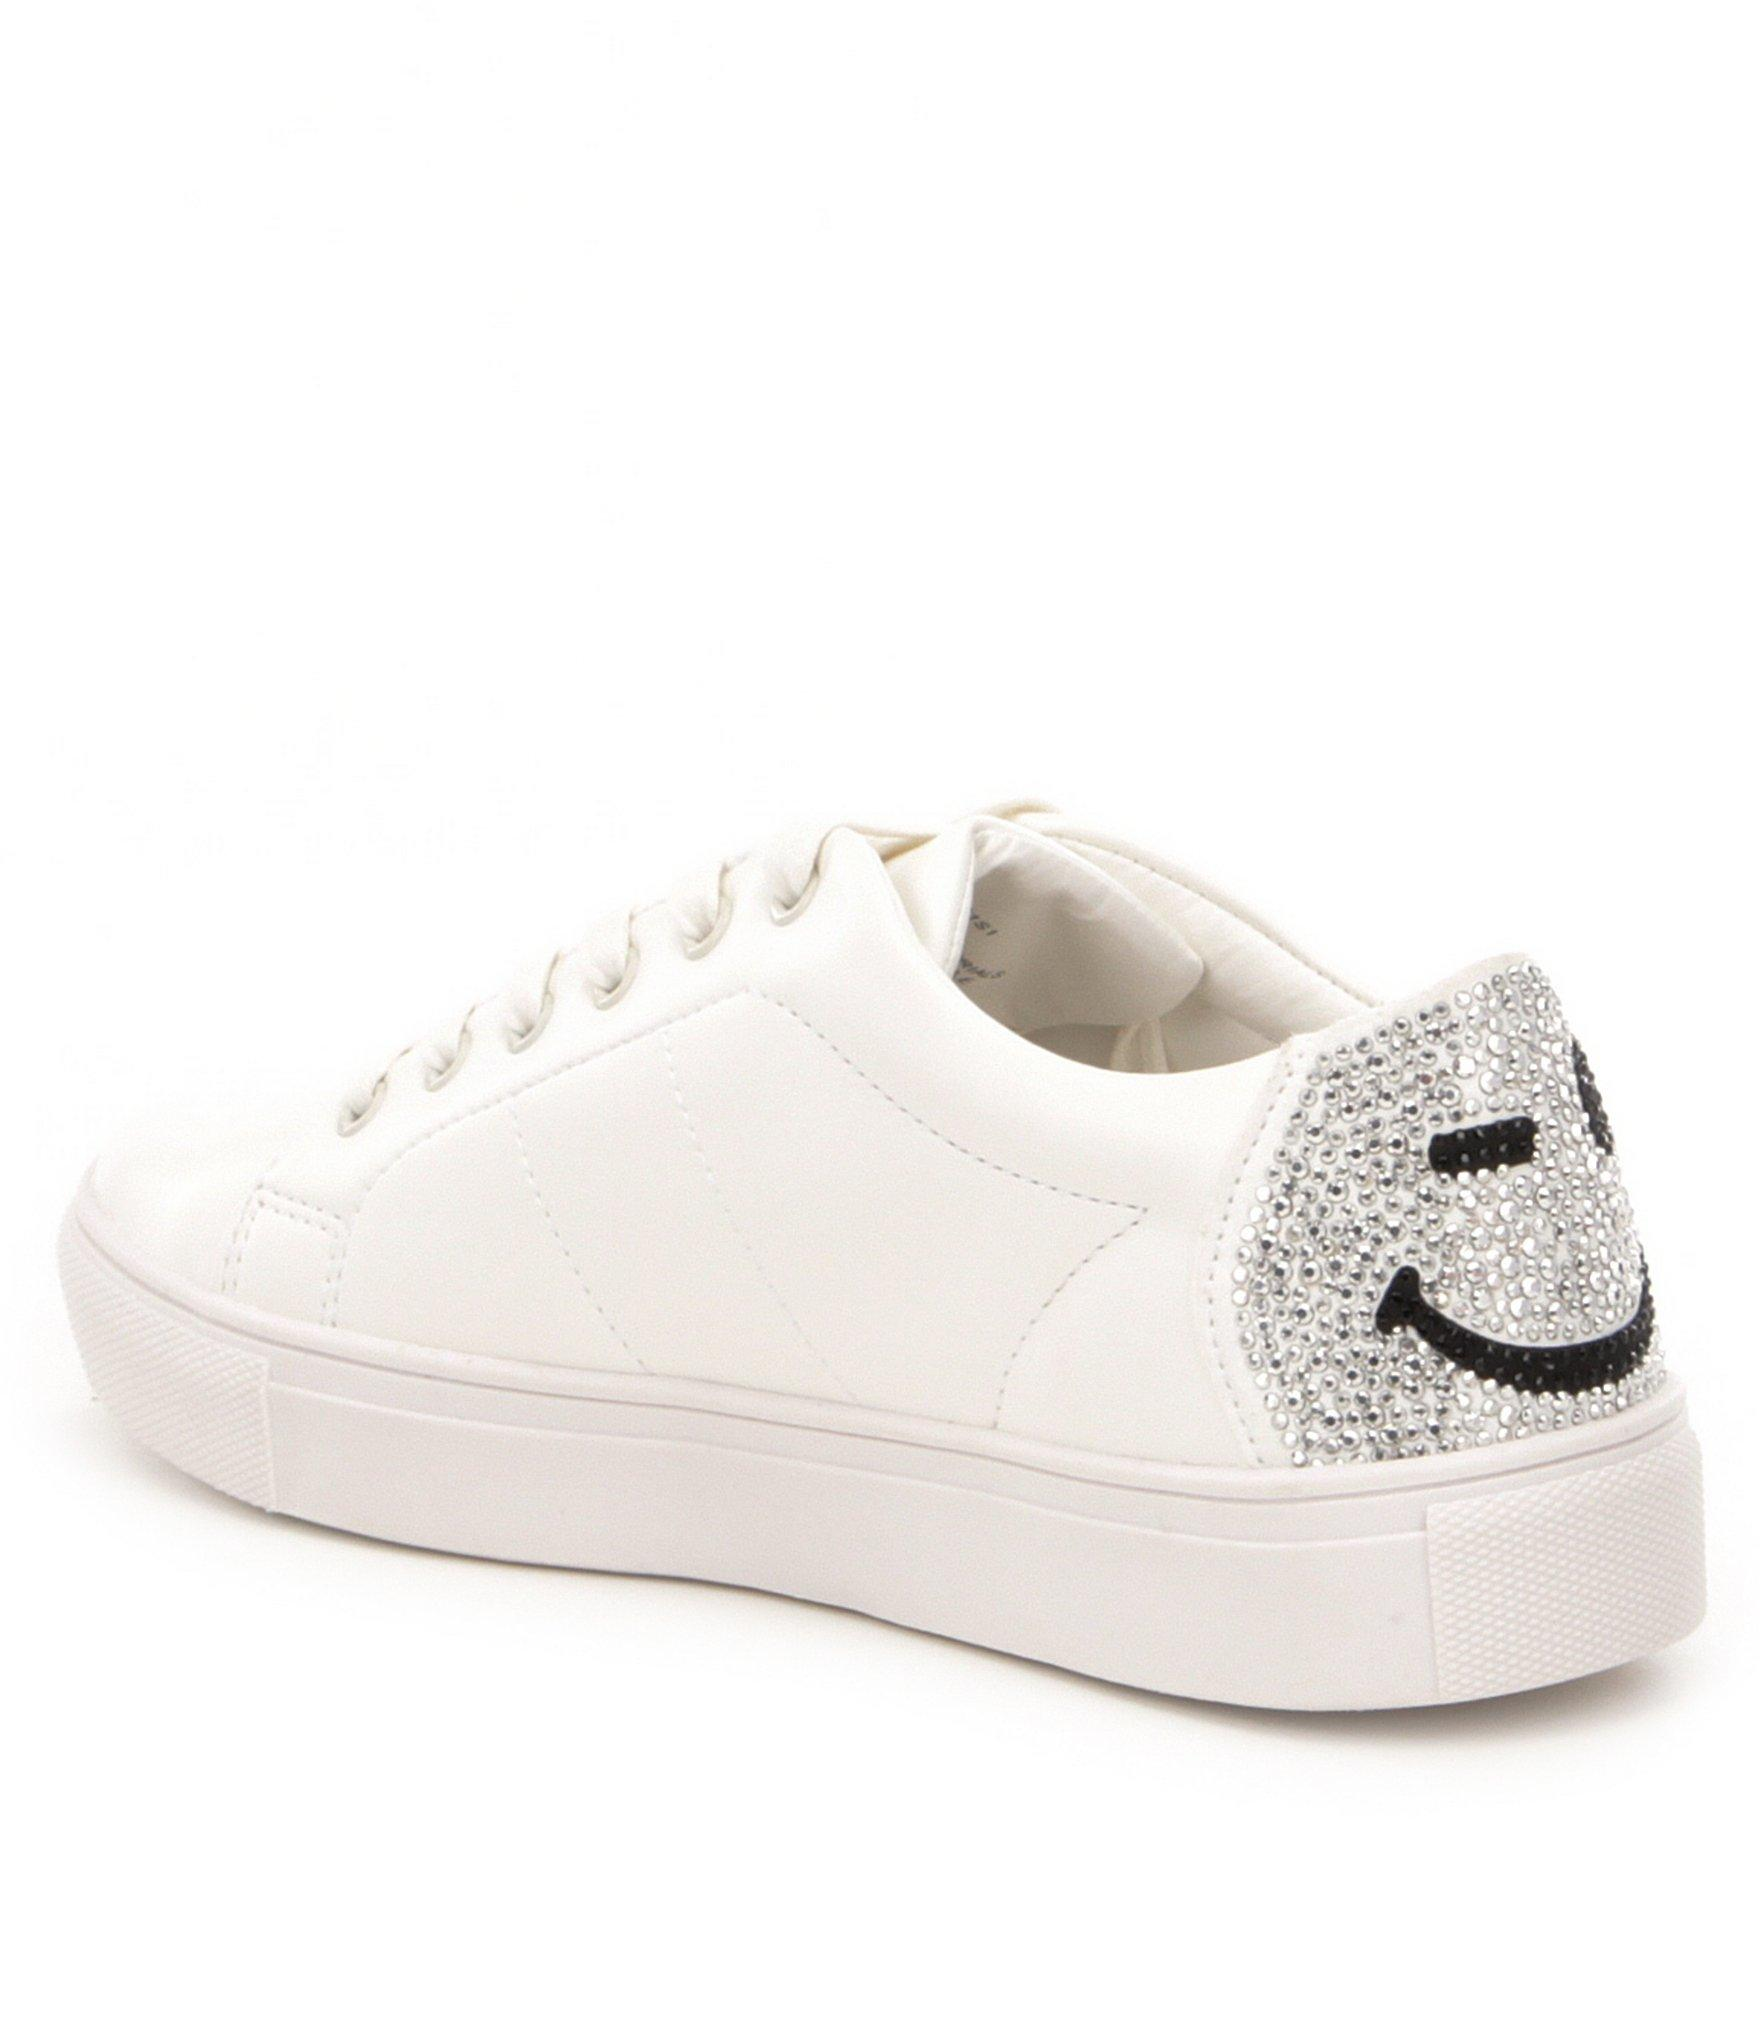 995cd92409f Lyst - Steve Madden Smiley Sneakers in White